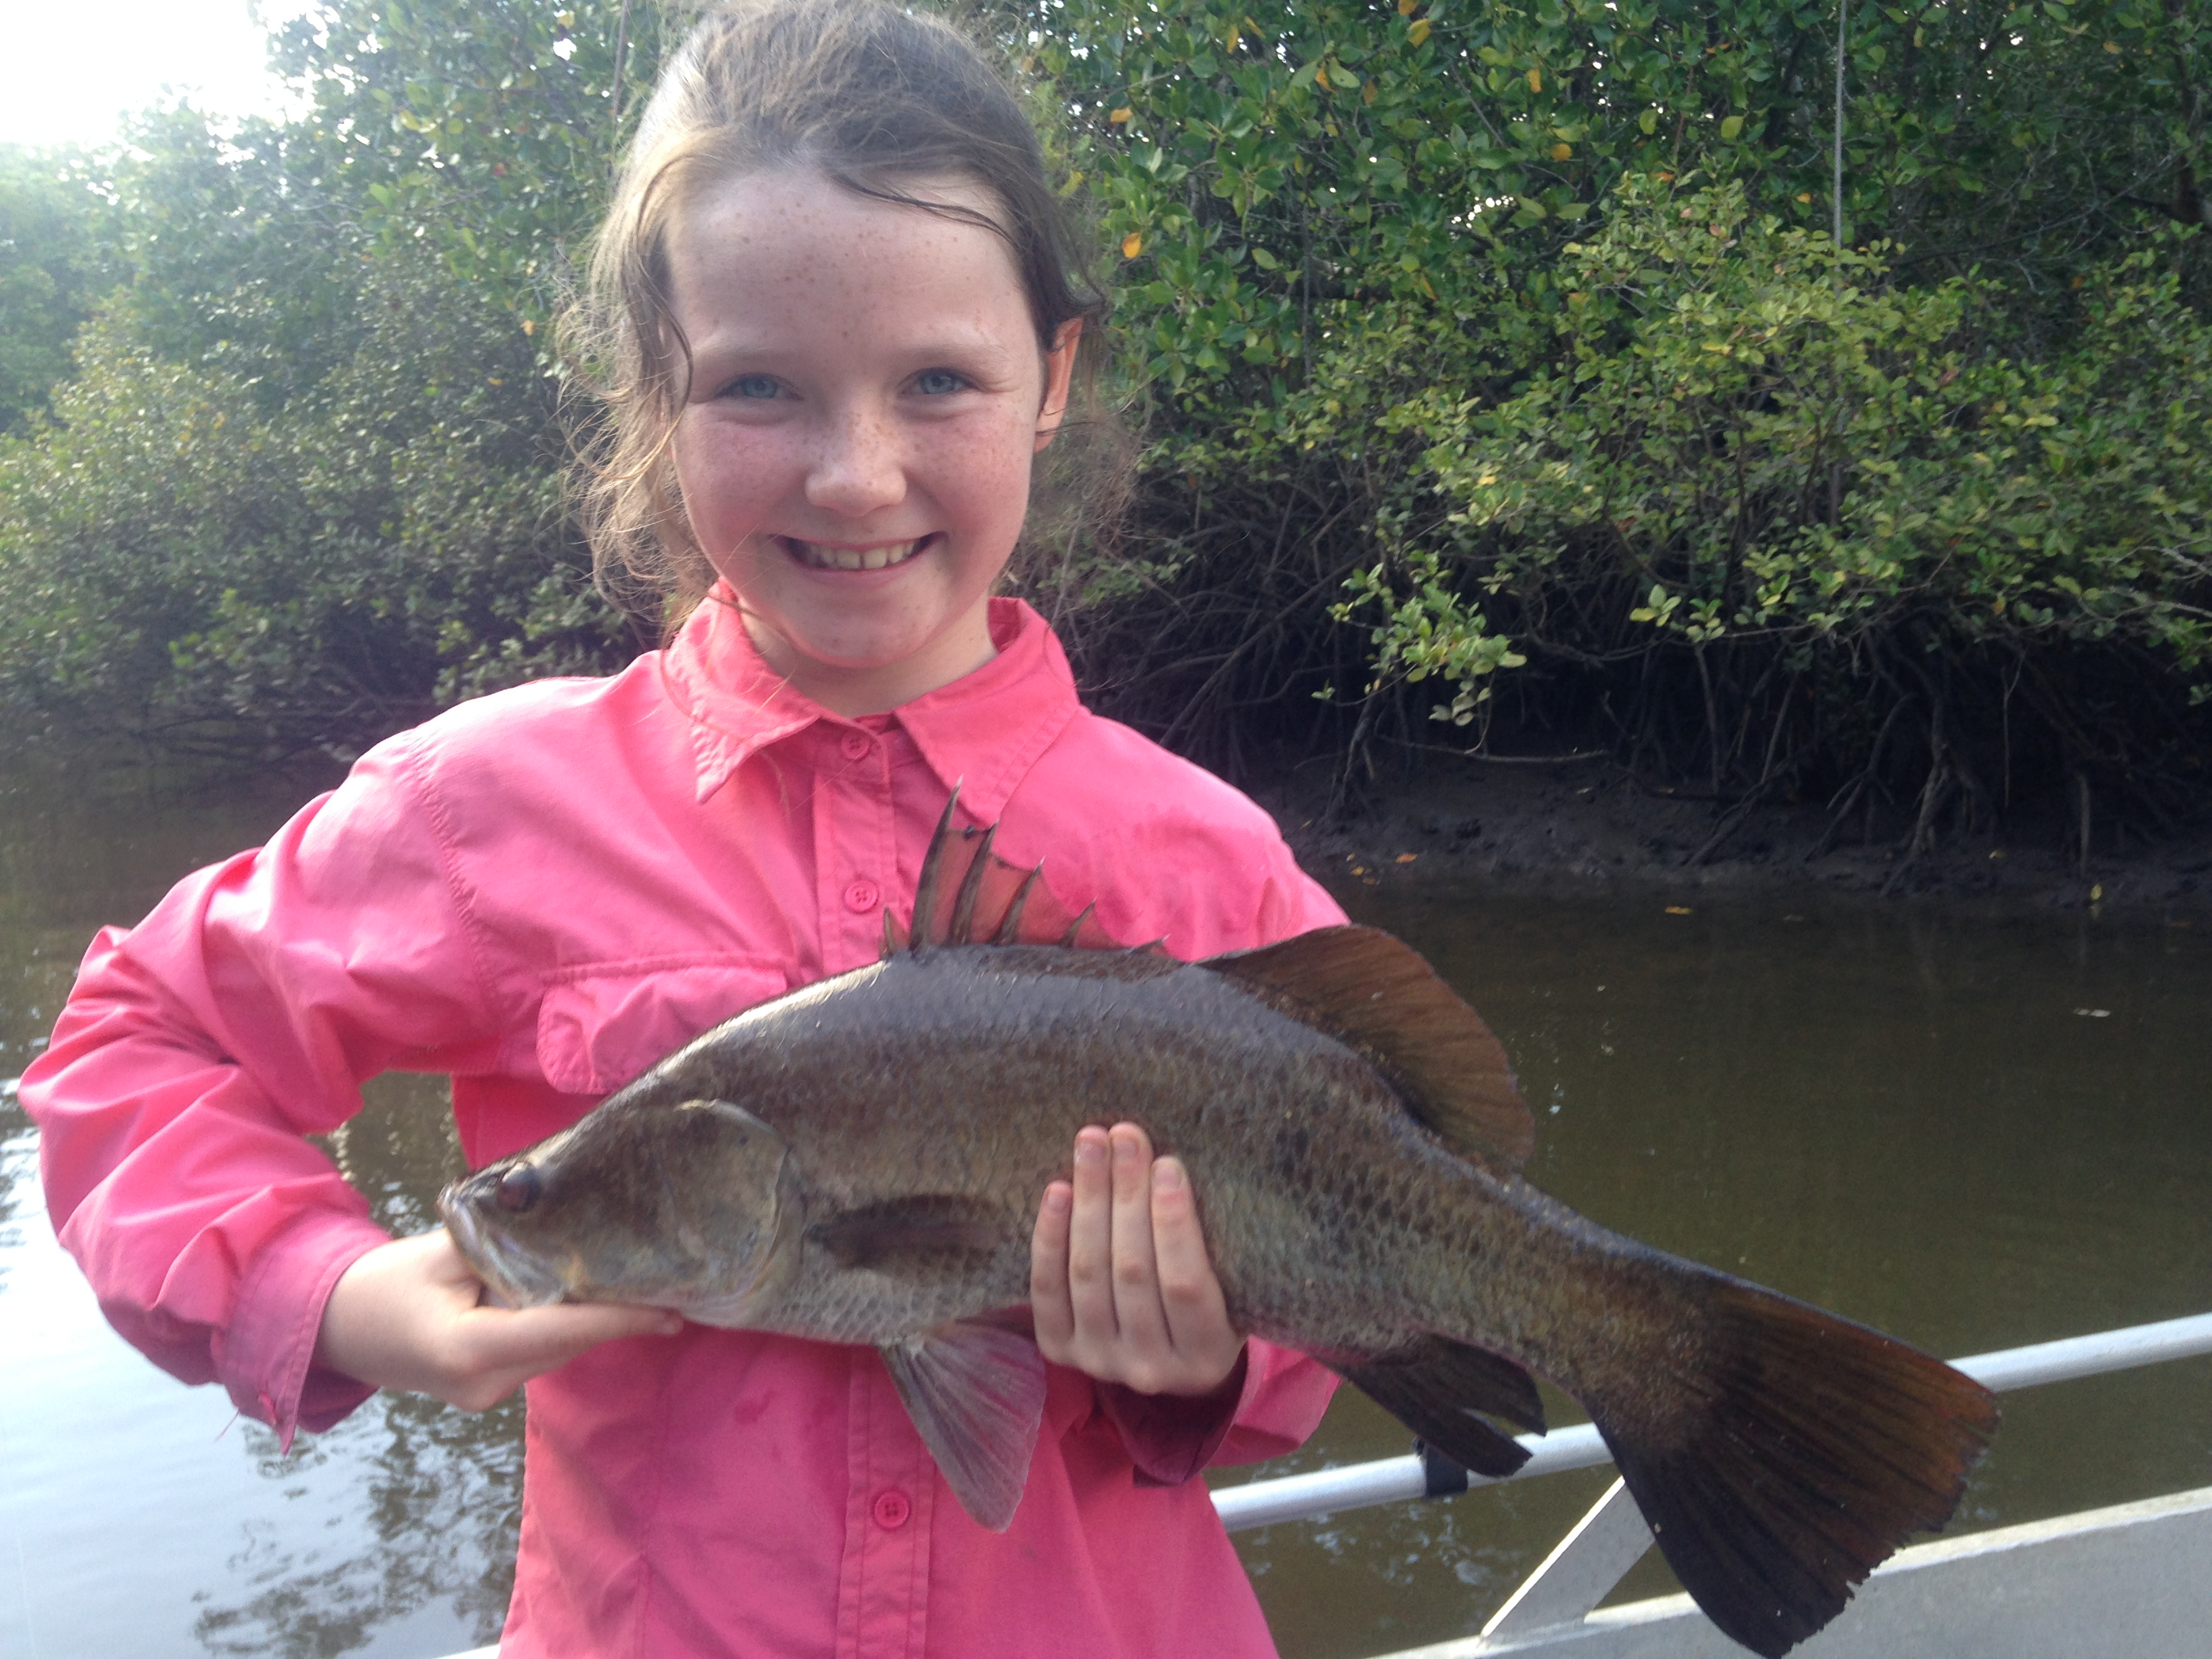 The author's 10-year-old sister with her first lure-caught barra.